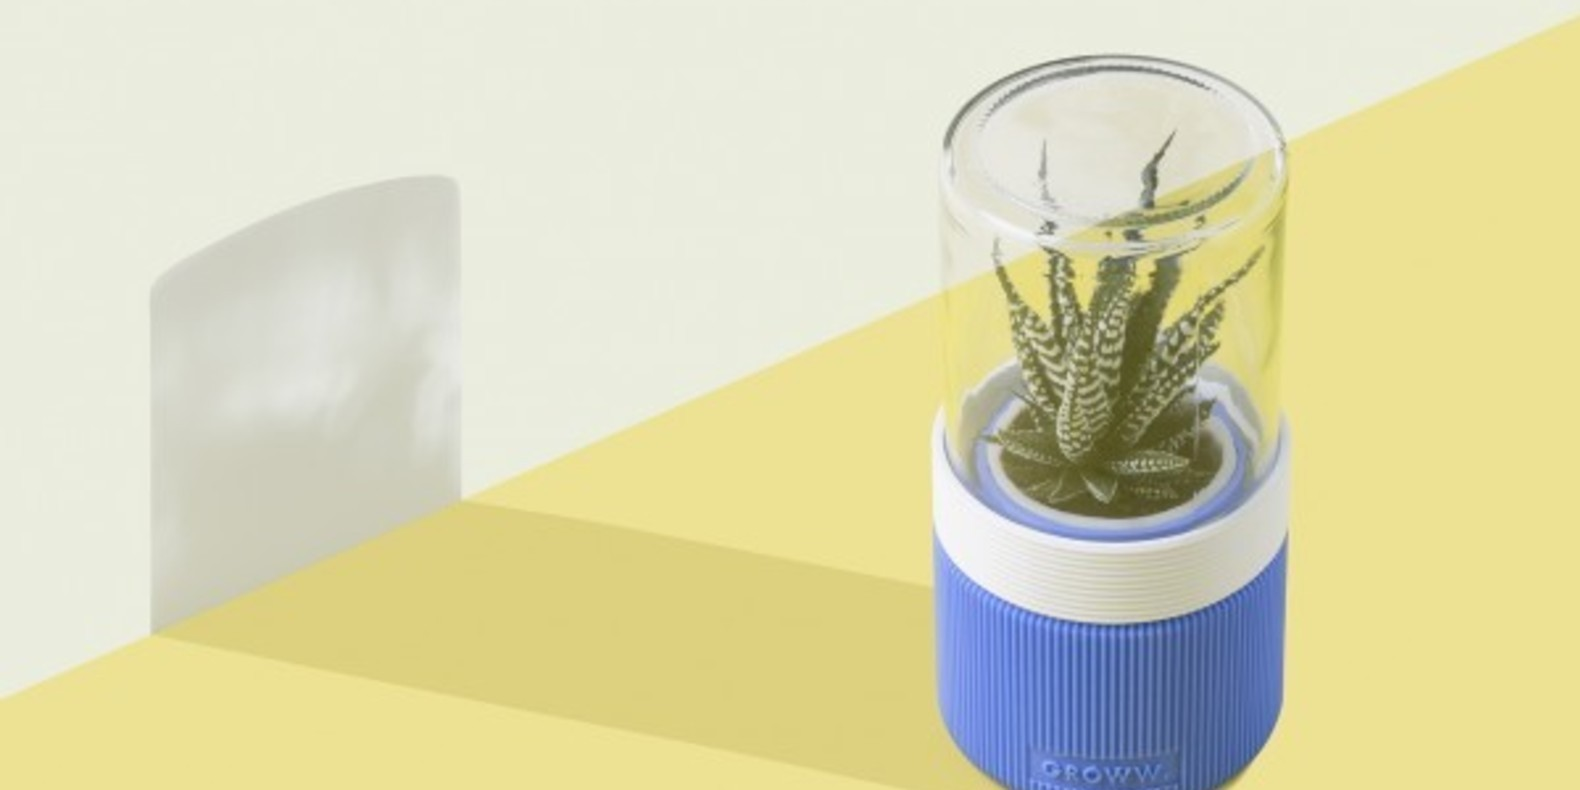 LAYERS by UAU project is an exhibition of everyday use products designed to be home manufactured using desktop 3D printers Cults 3D printing